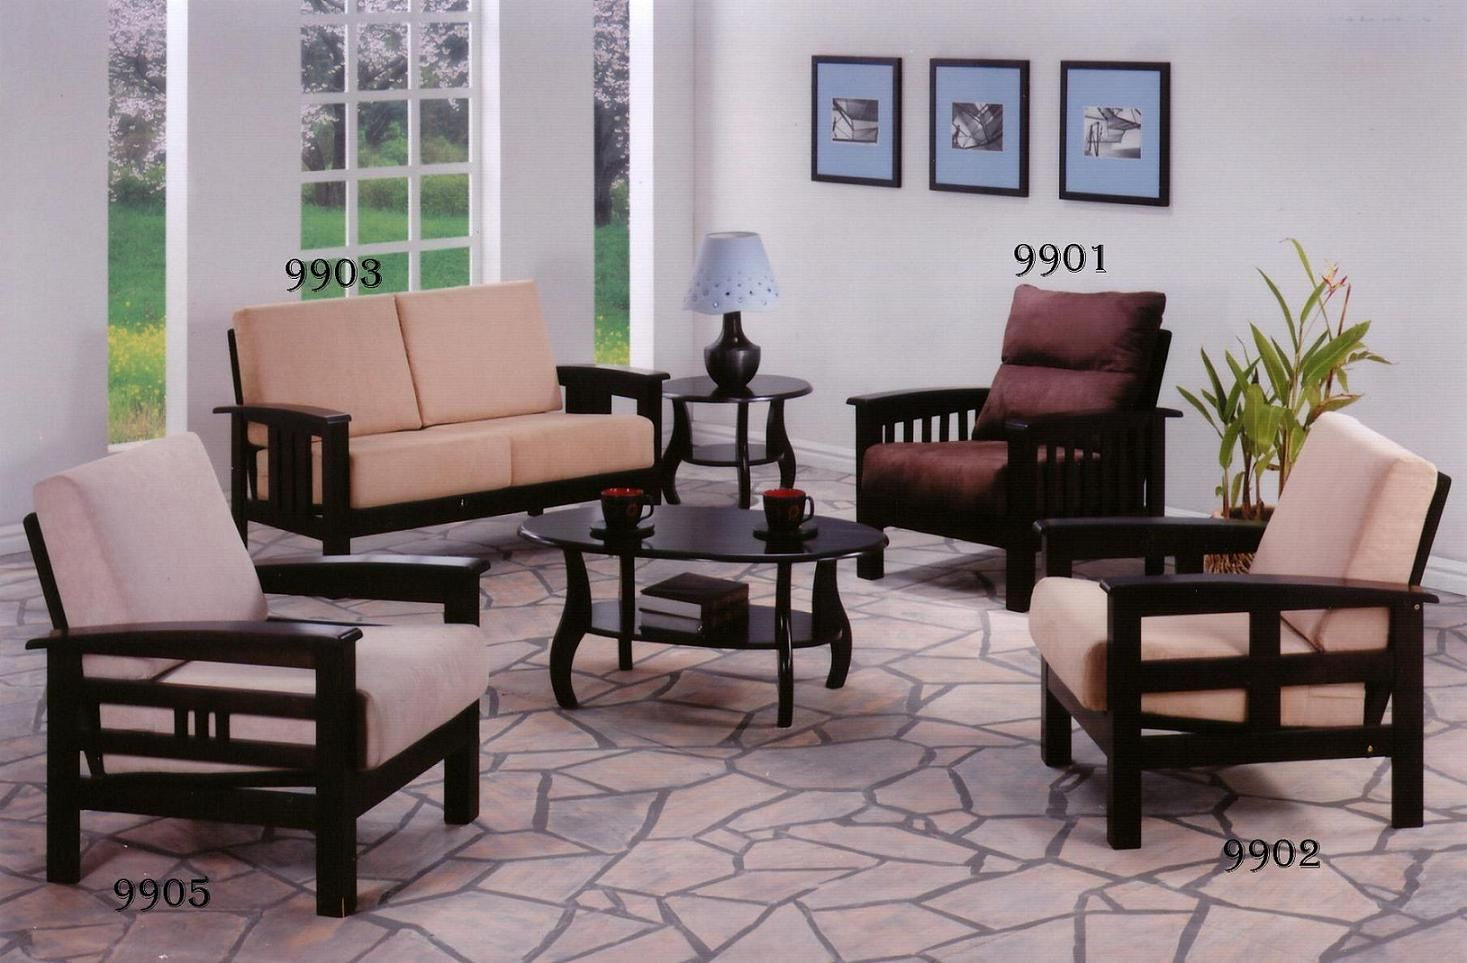 Wooden Sofa Designs Pictures in Traditional Indian Style ...